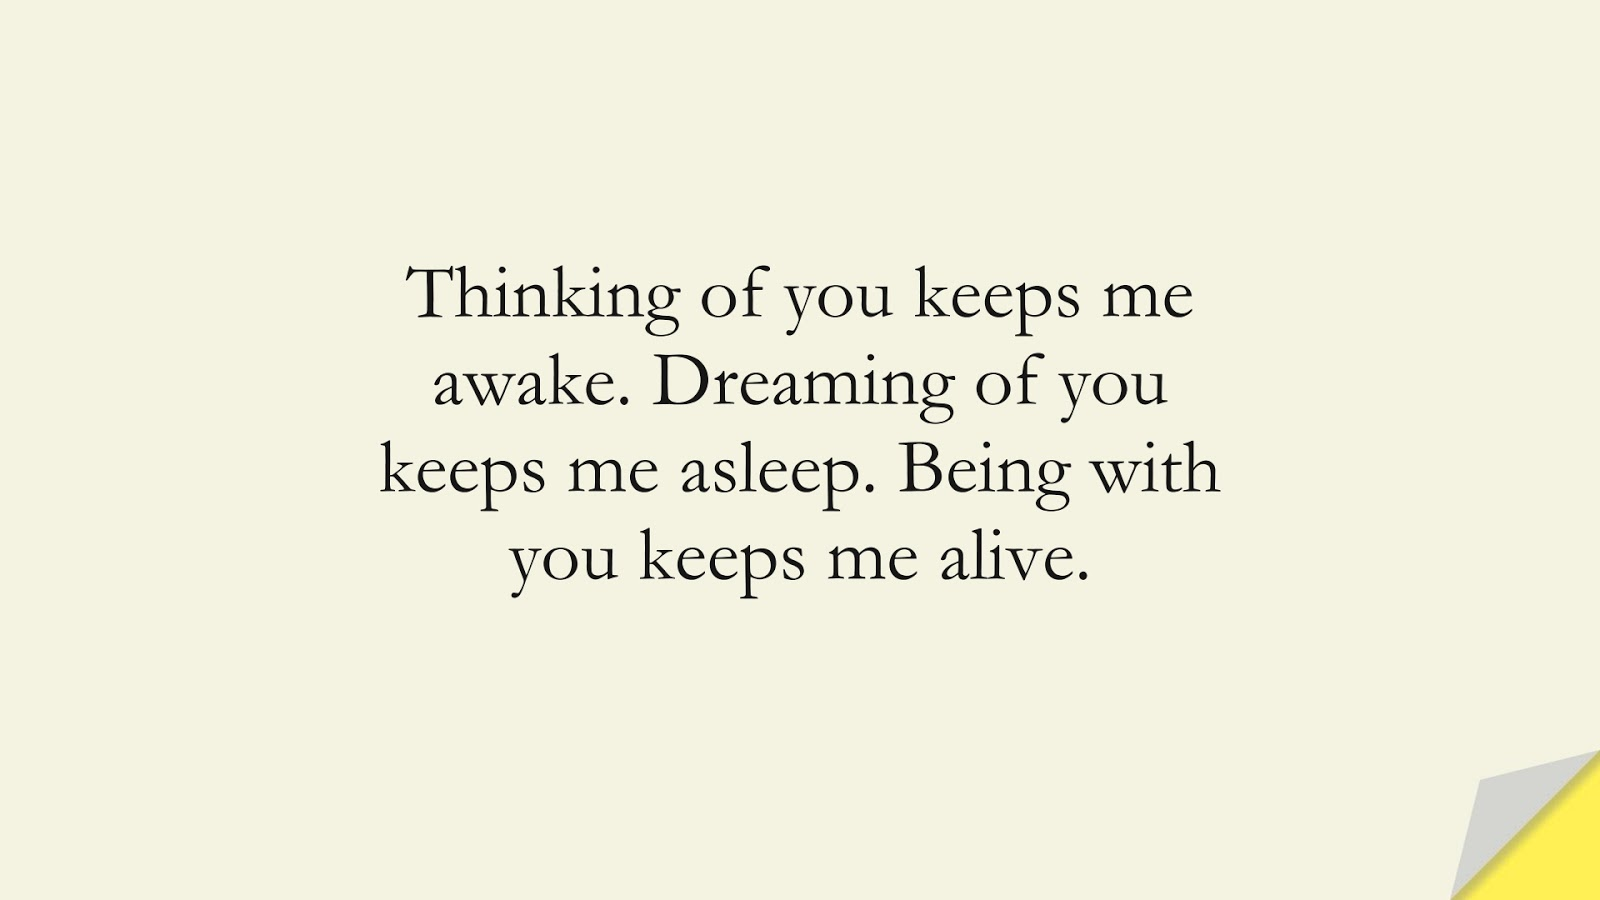 Thinking of you keeps me awake. Dreaming of you keeps me asleep. Being with you keeps me alive.FALSE